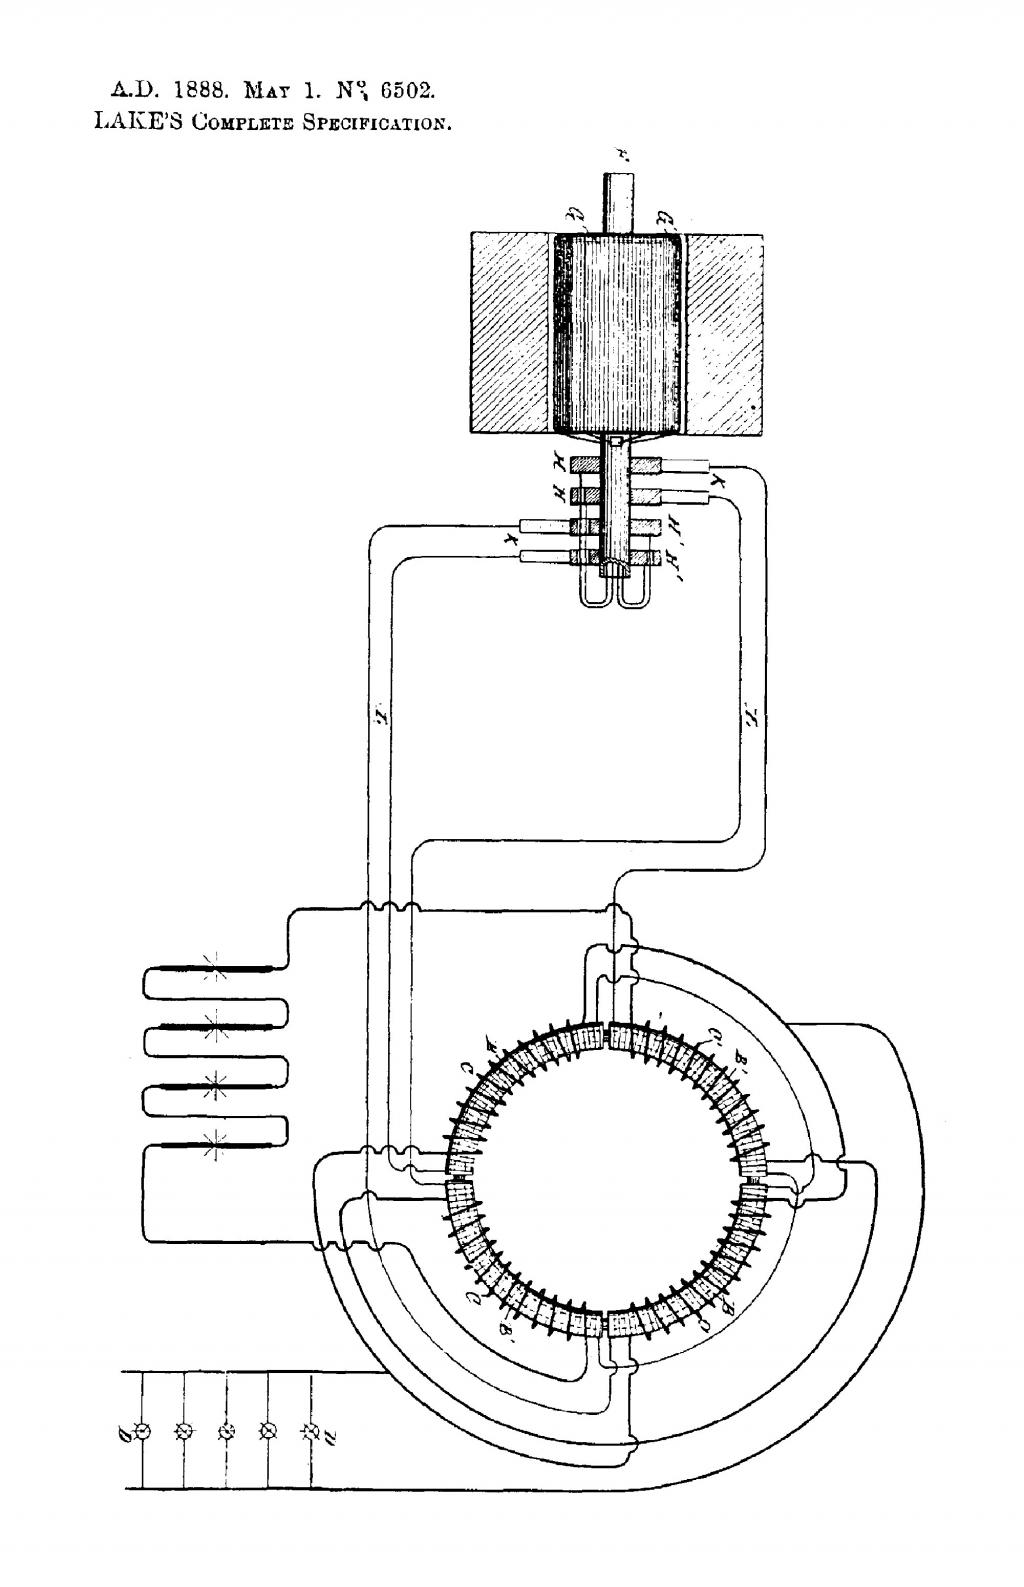 Nikola Tesla British Patent 6502 - Improvements Relating to the Generation and Distribution of Electric Currents and to Apparatus Therefor - Image 1